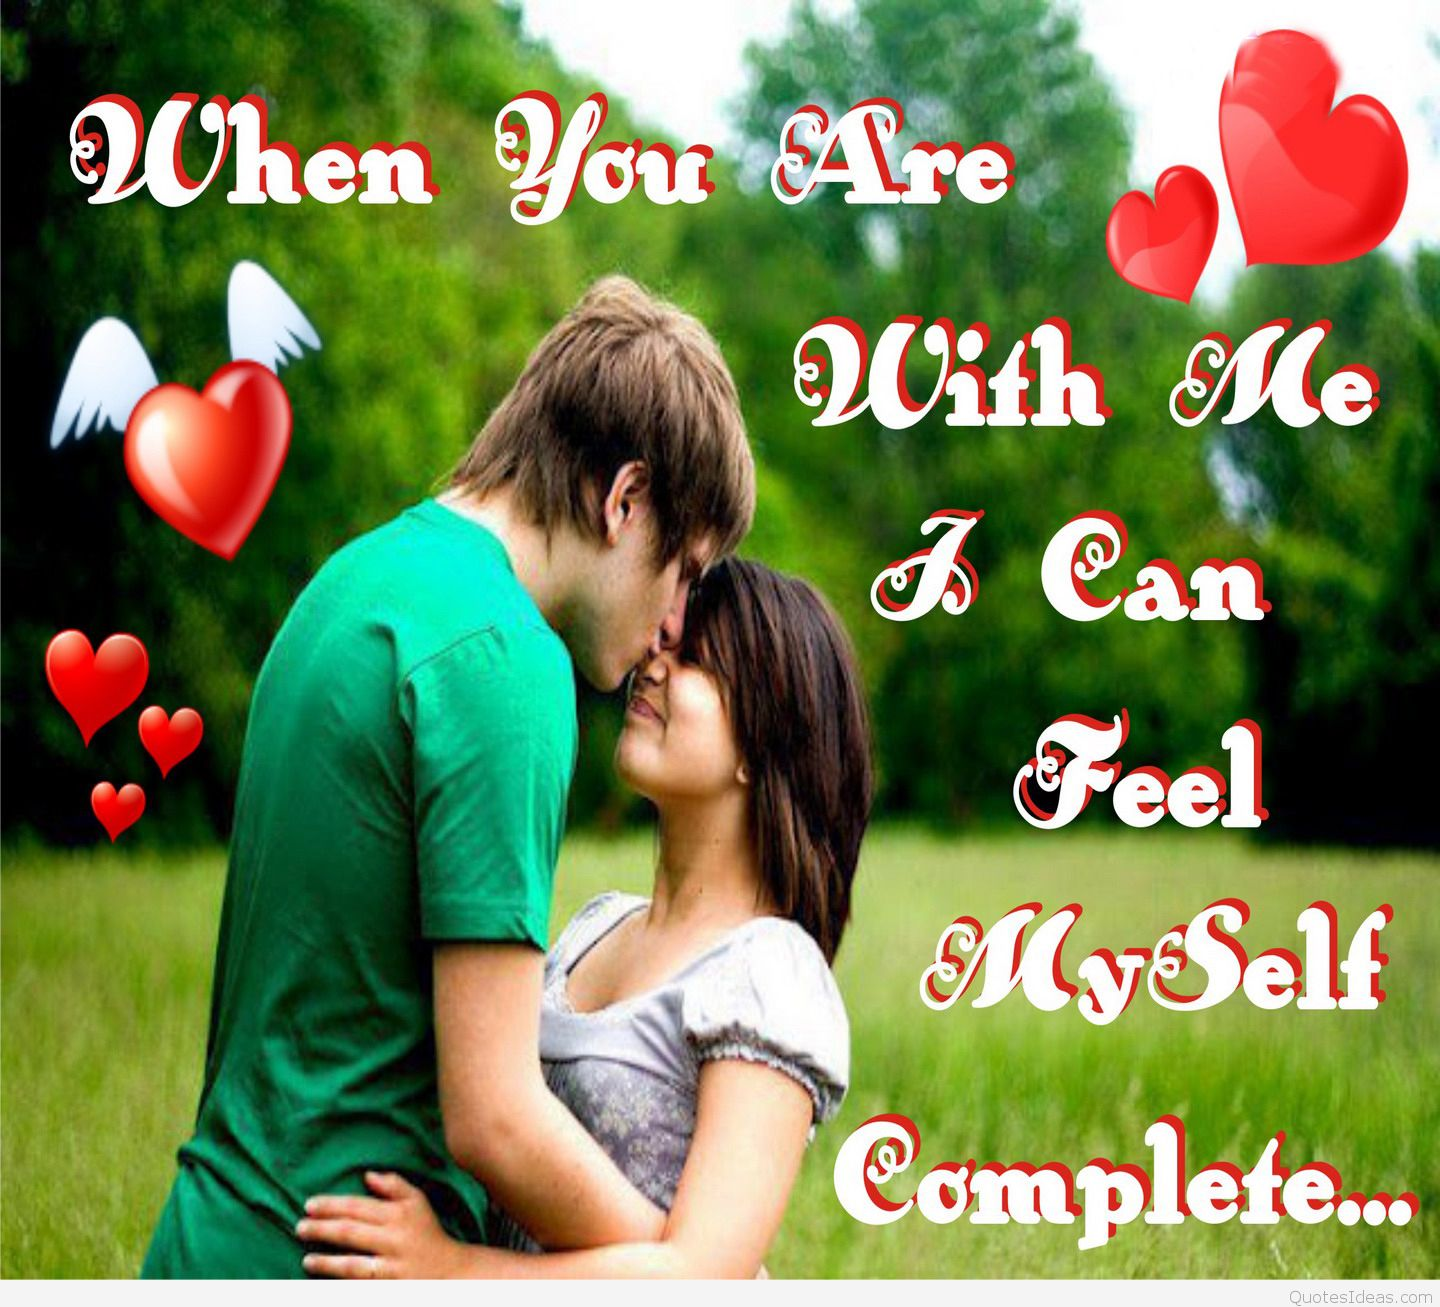 Romantic Couple With Love Quotes Best Hd Wallpapers - Beautiful Love Romantic Wallpaper Hd - HD Wallpaper